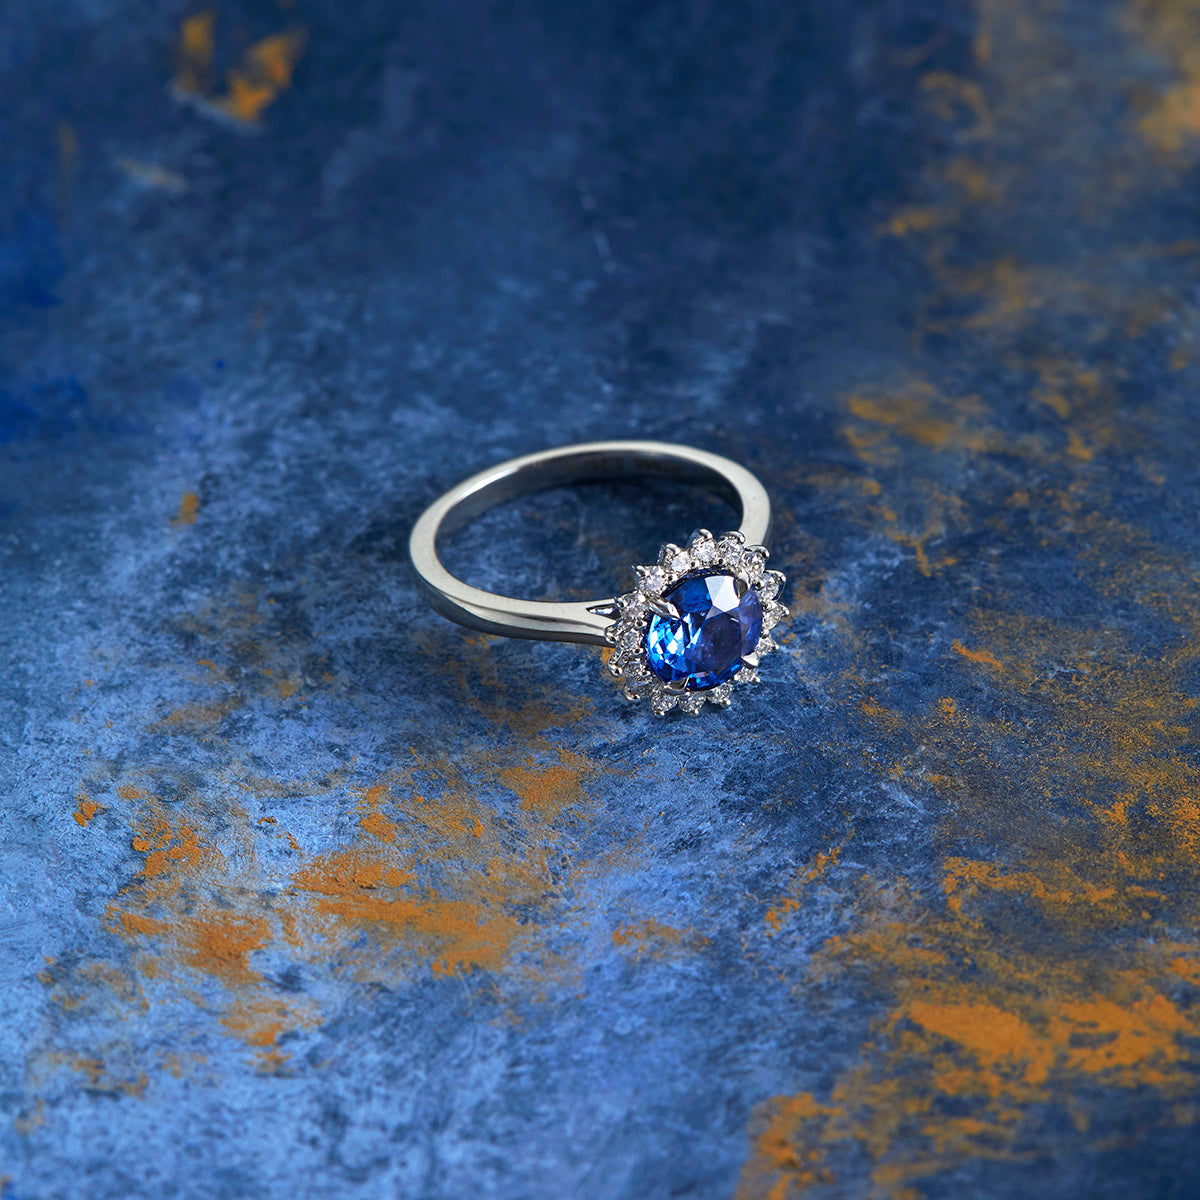 Payment, financing, how to afford an engagement ring, how to pay for an engagement ring, ring financing, fenton payment options, engagement ring financing